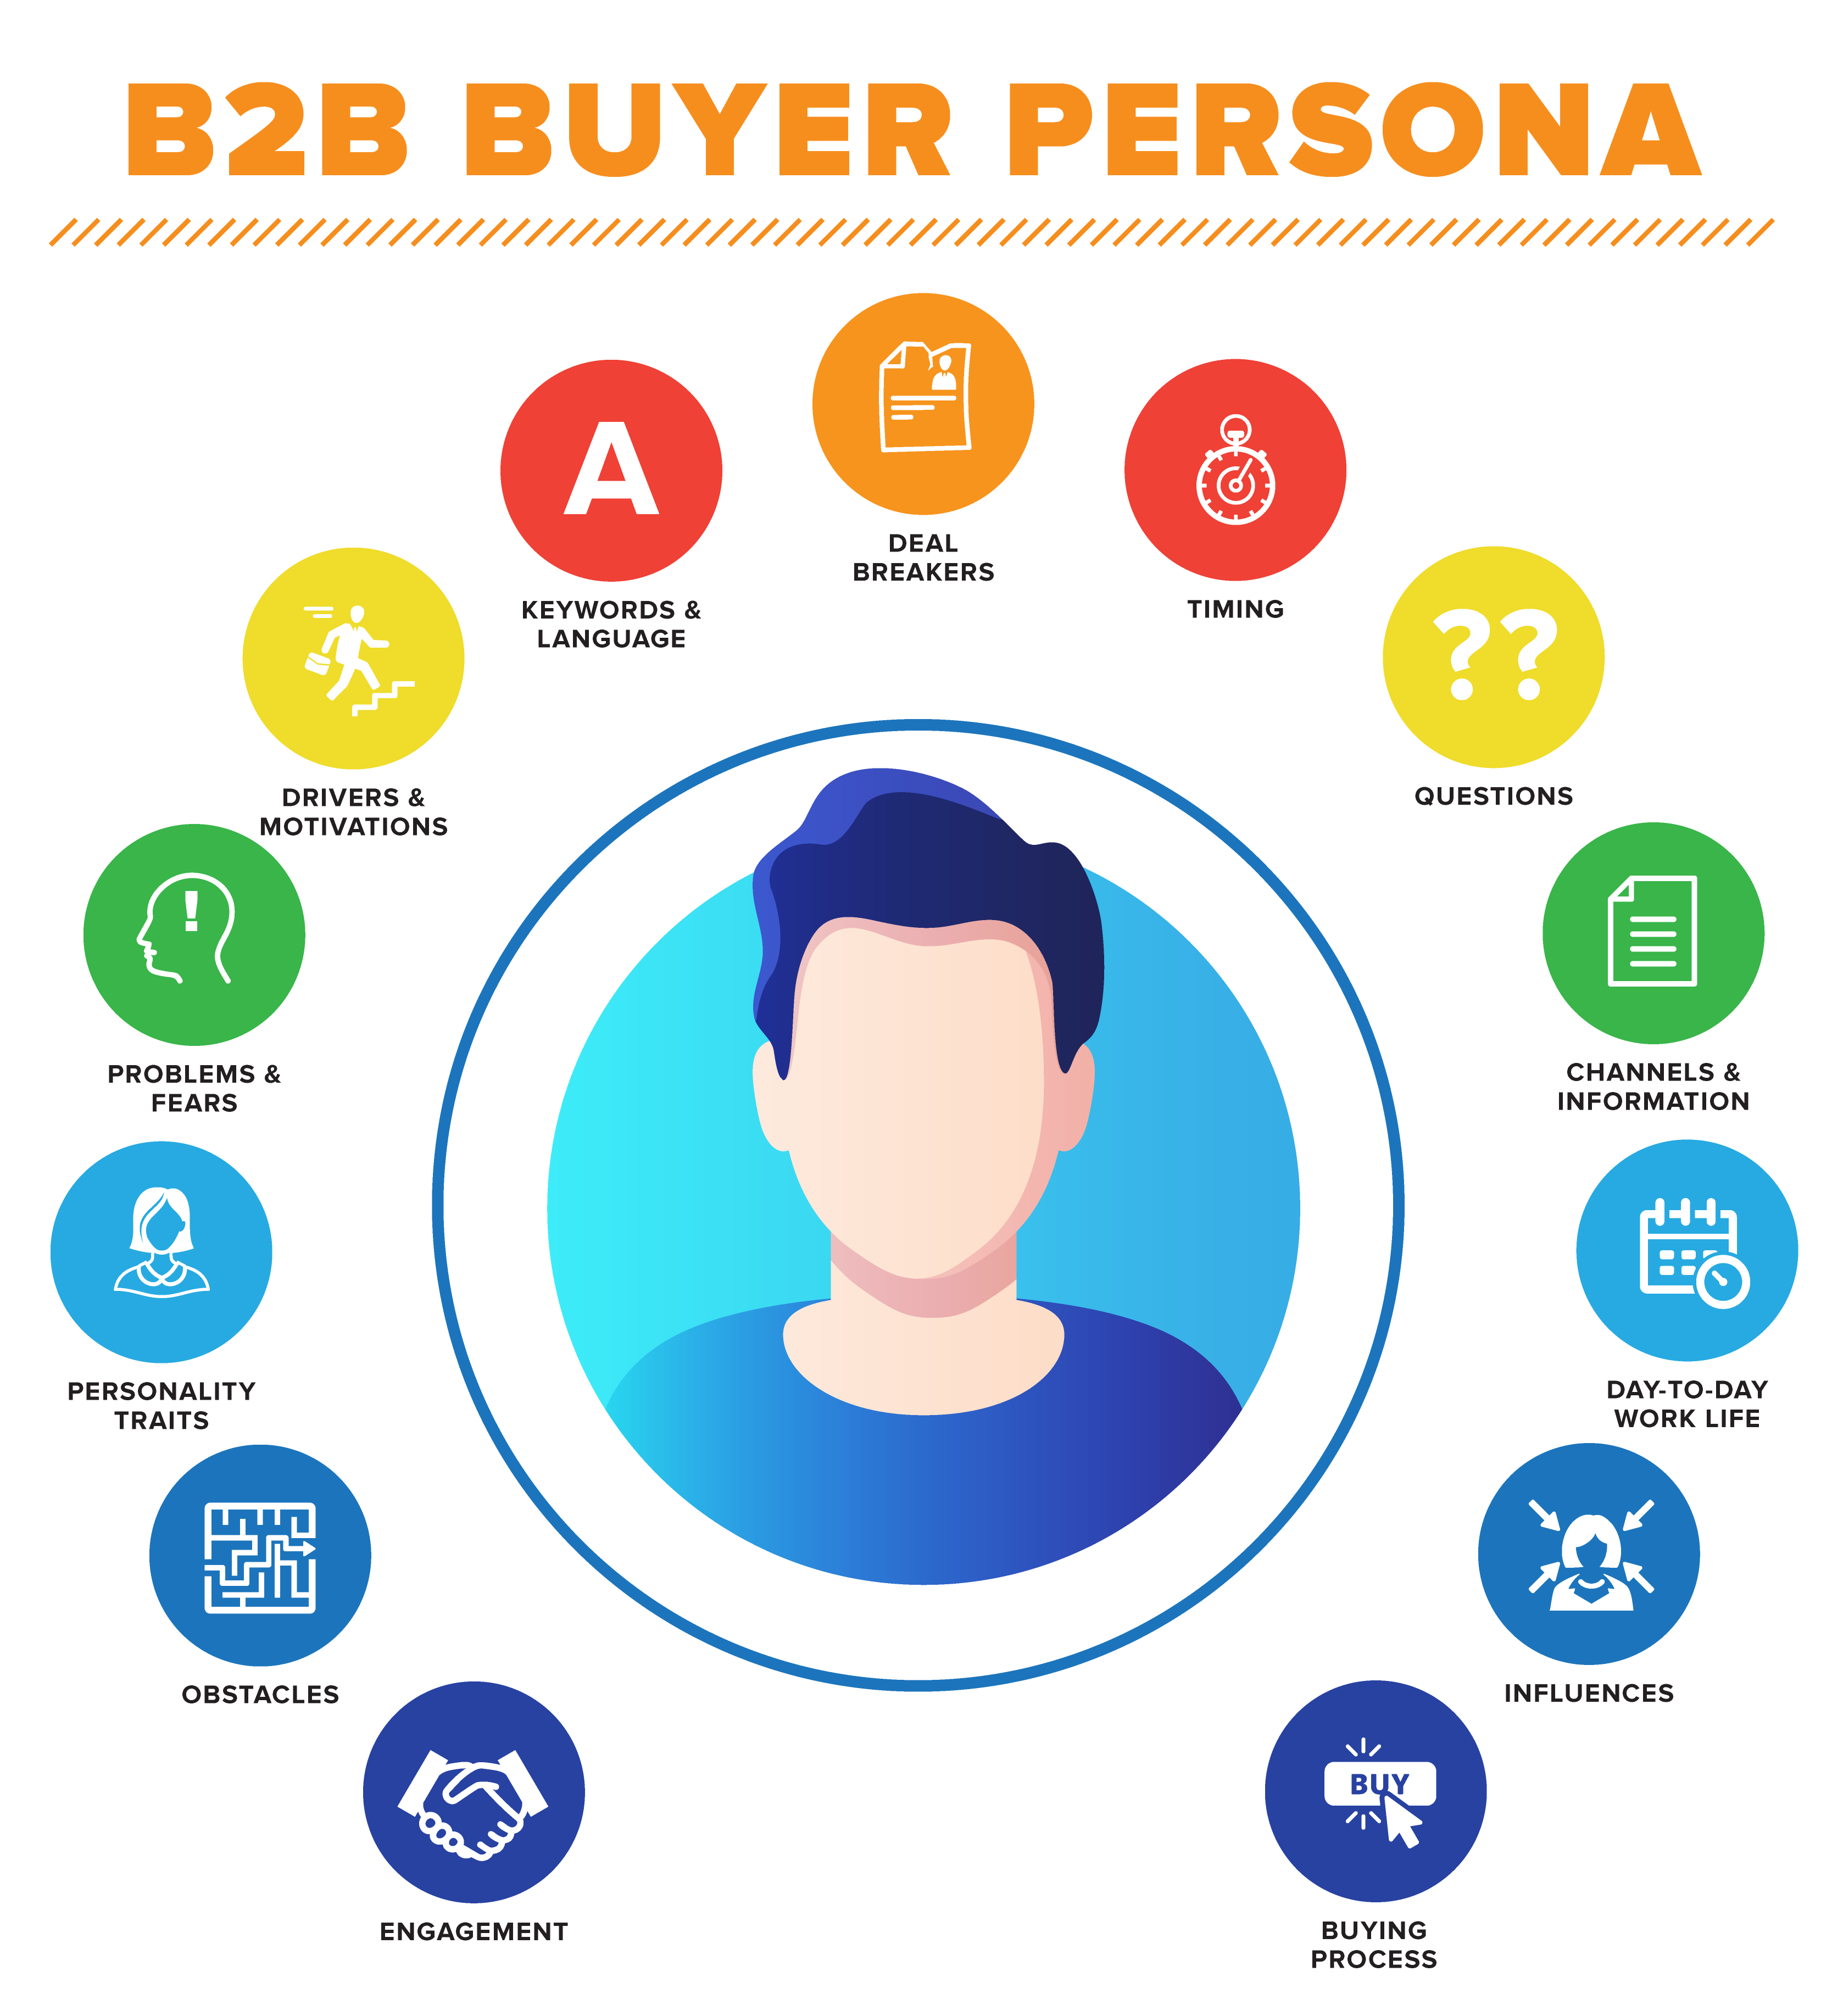 Infographic describing understanding your persona and their deal breakers, motives, personality etc.